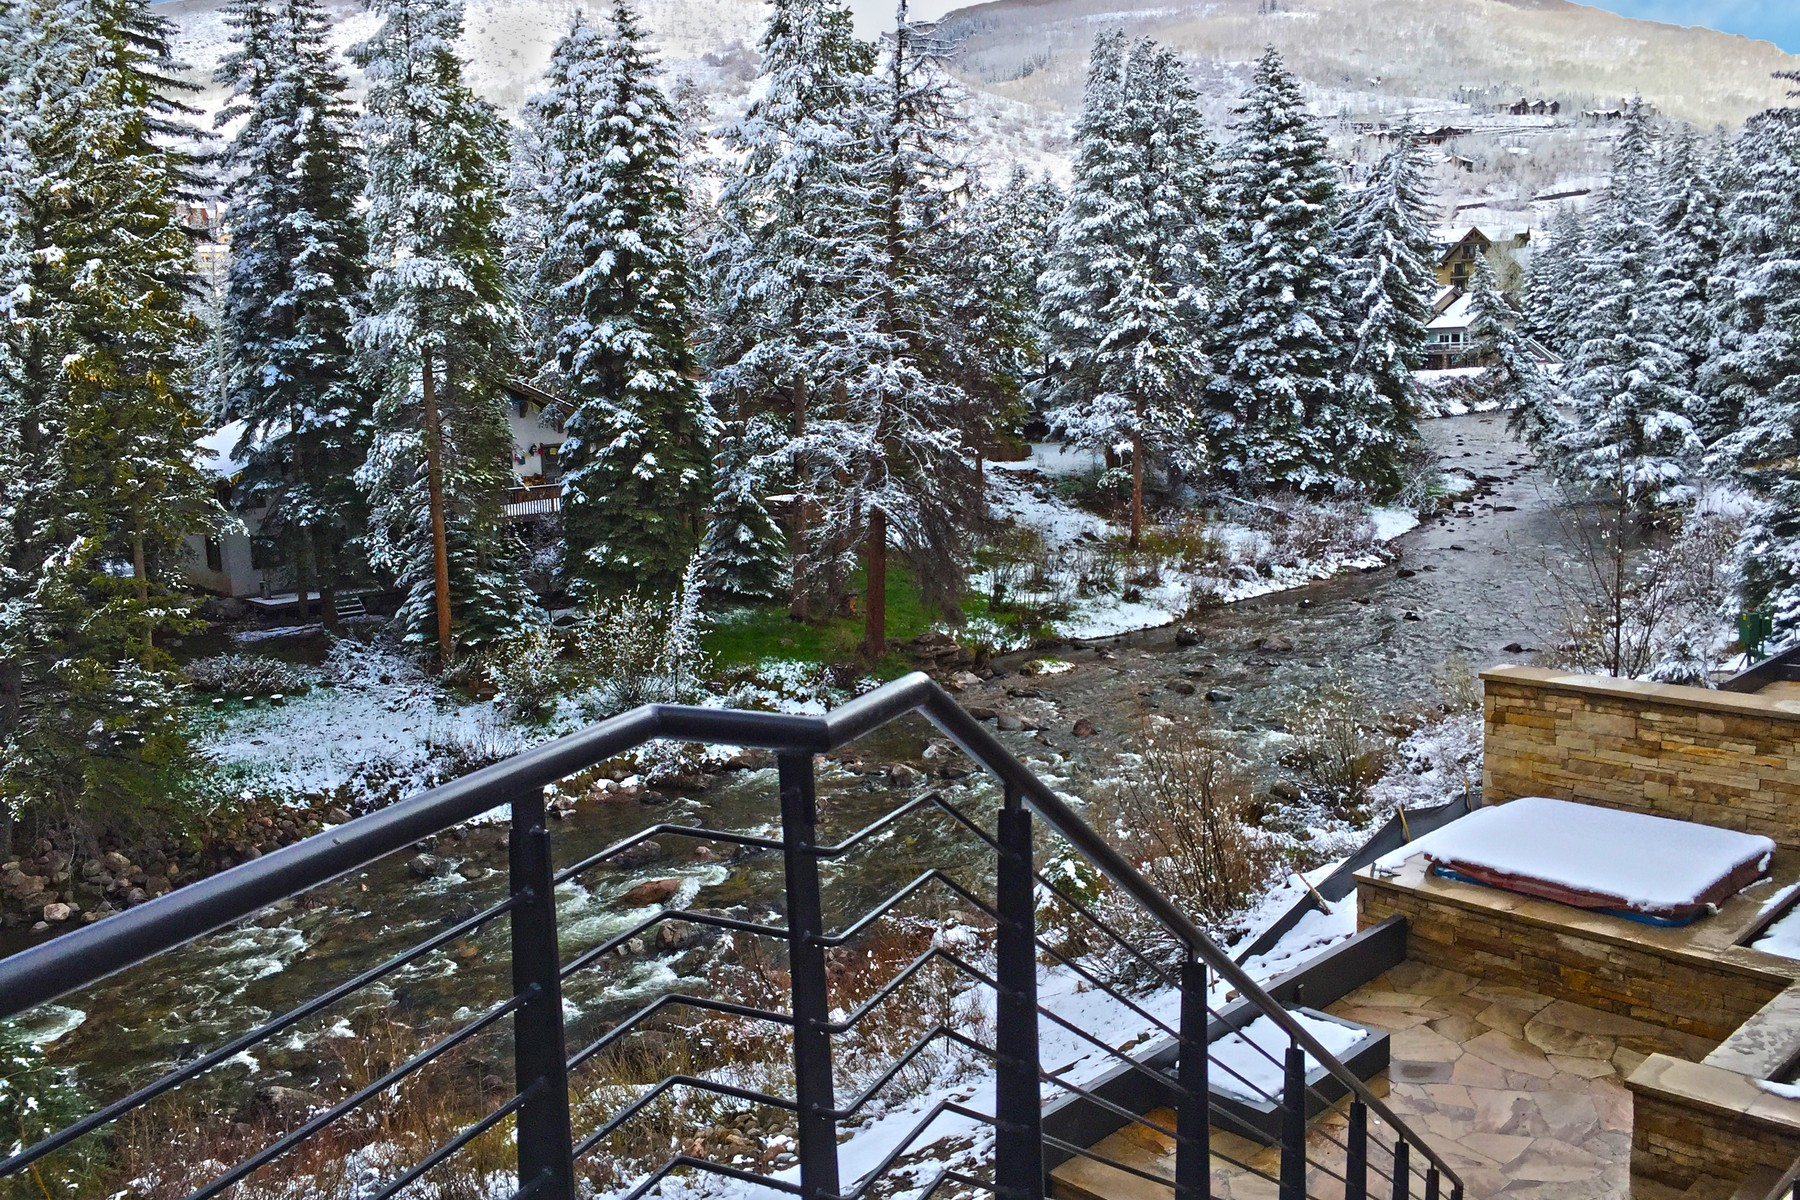 Dôi vì Bán tại New Construction on Gore Creek 223 Beaver Dam Road Vail Village, Vail, Colorado, 81657 Hoa Kỳ